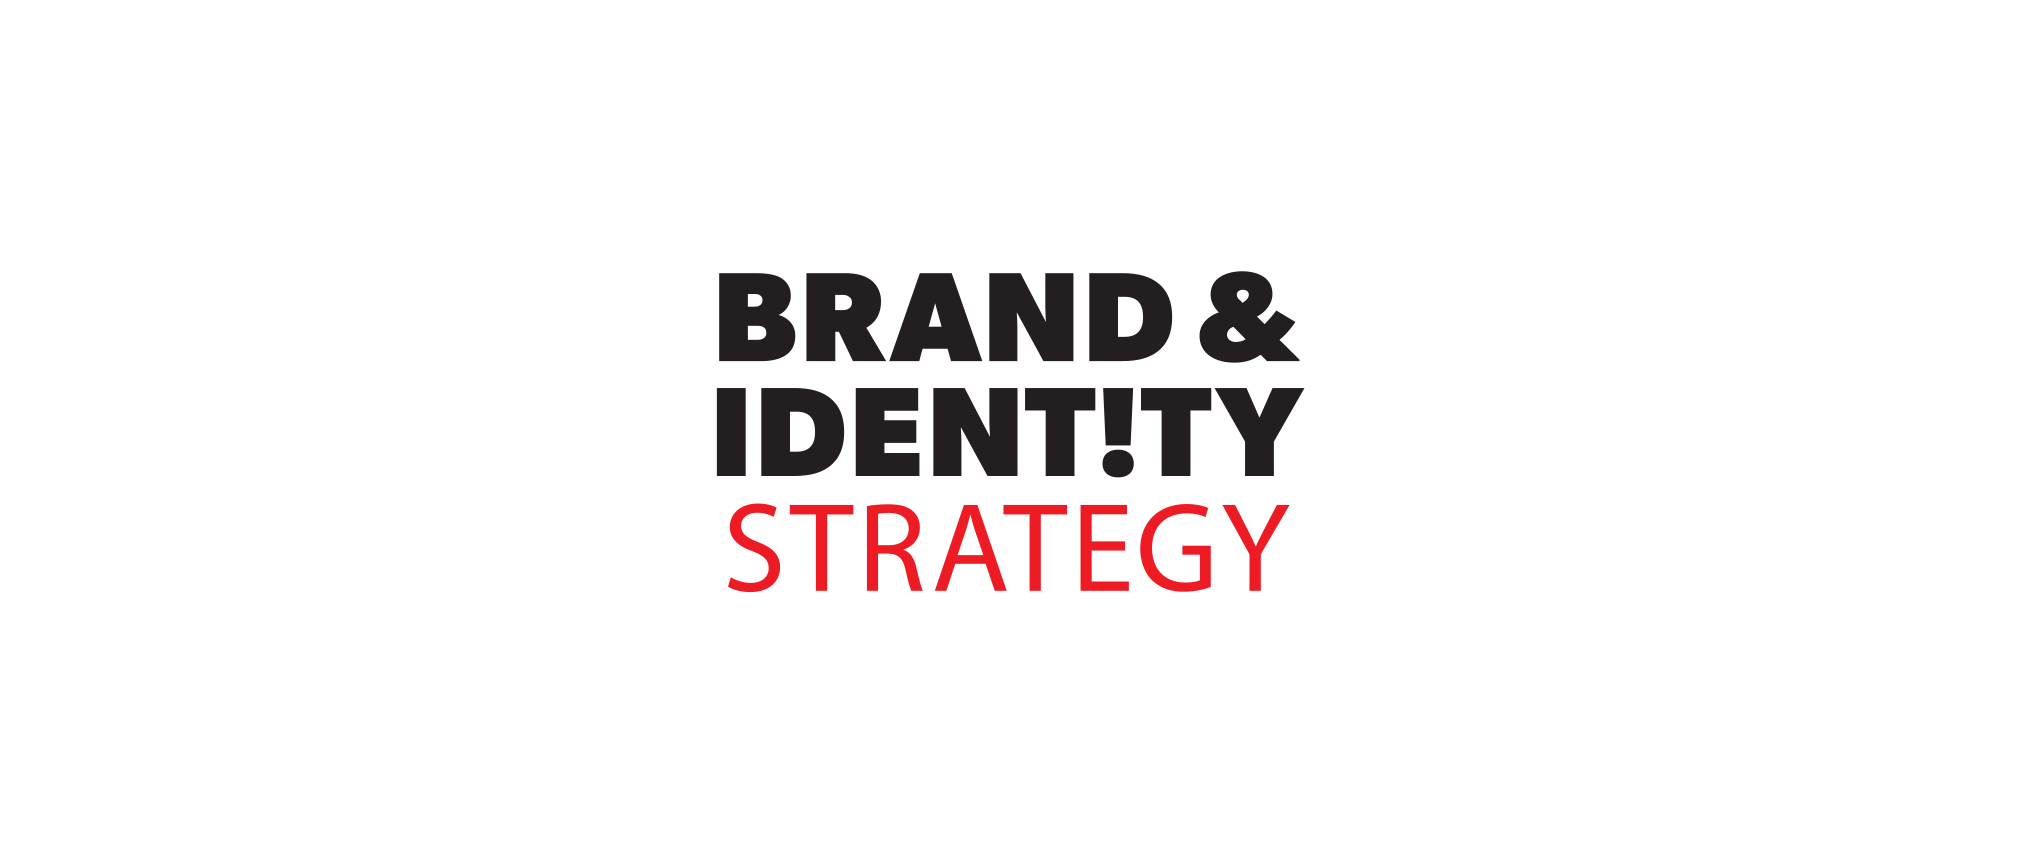 Brand and identity